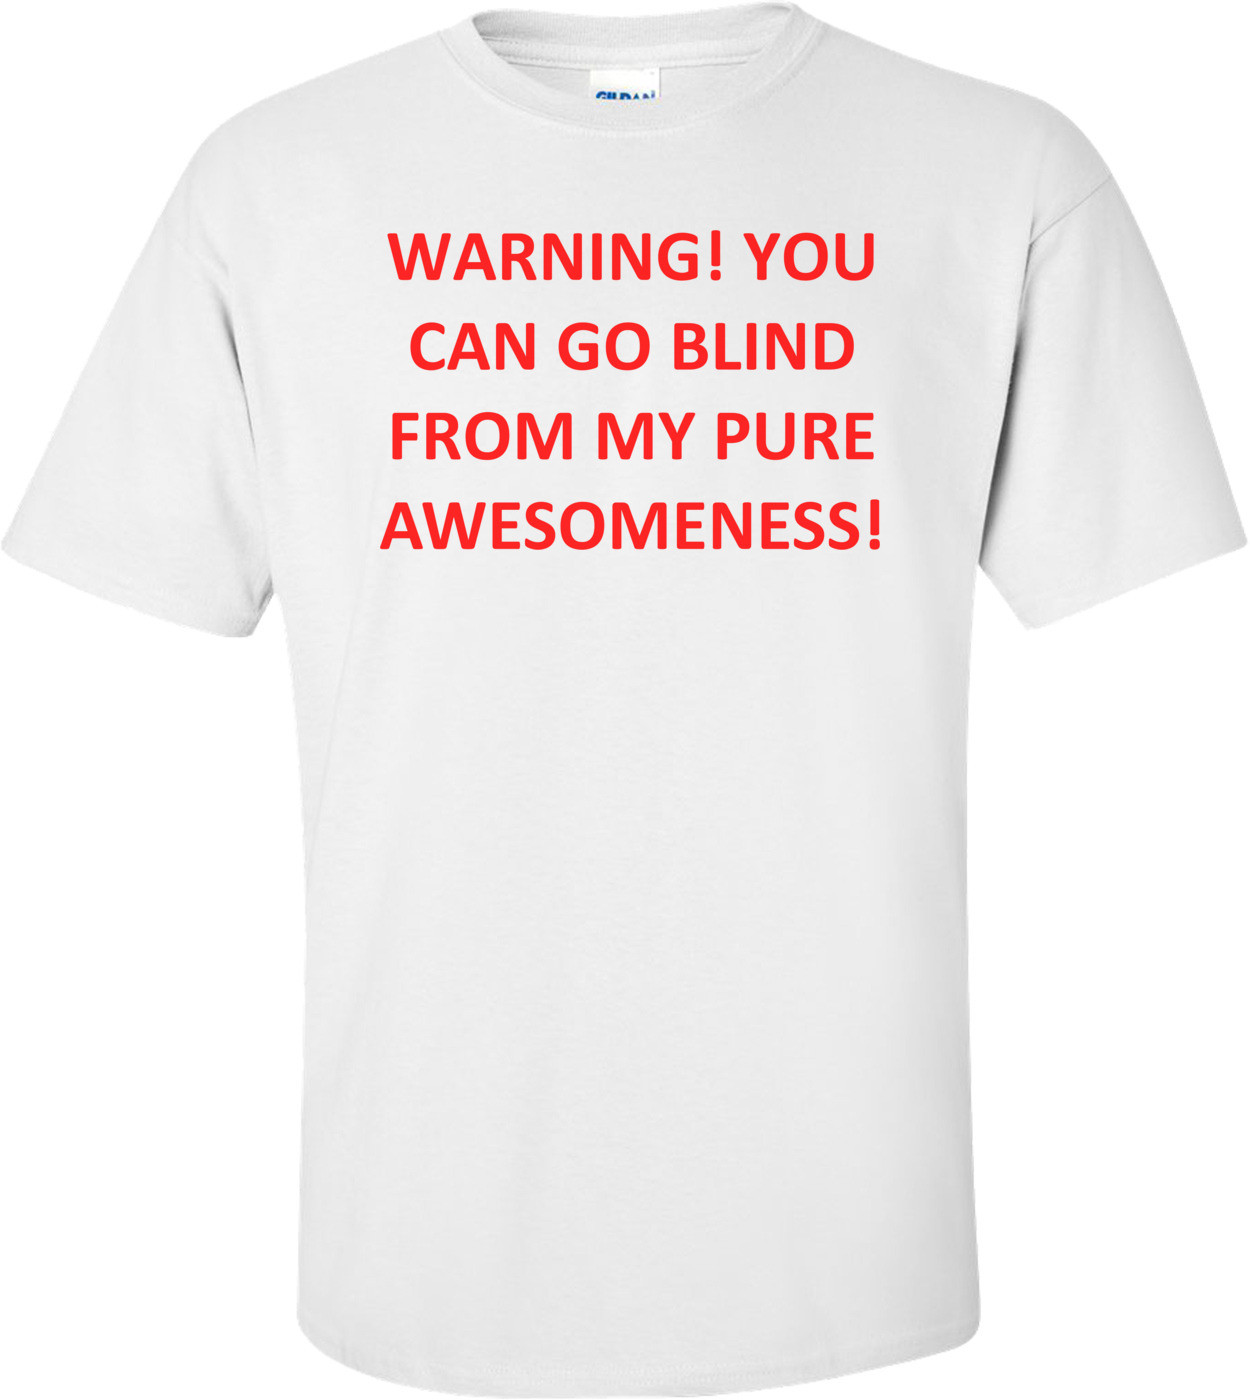 WARNING! YOU CAN GO BLIND FROM MY PURE AWESOMENESS! Shirt